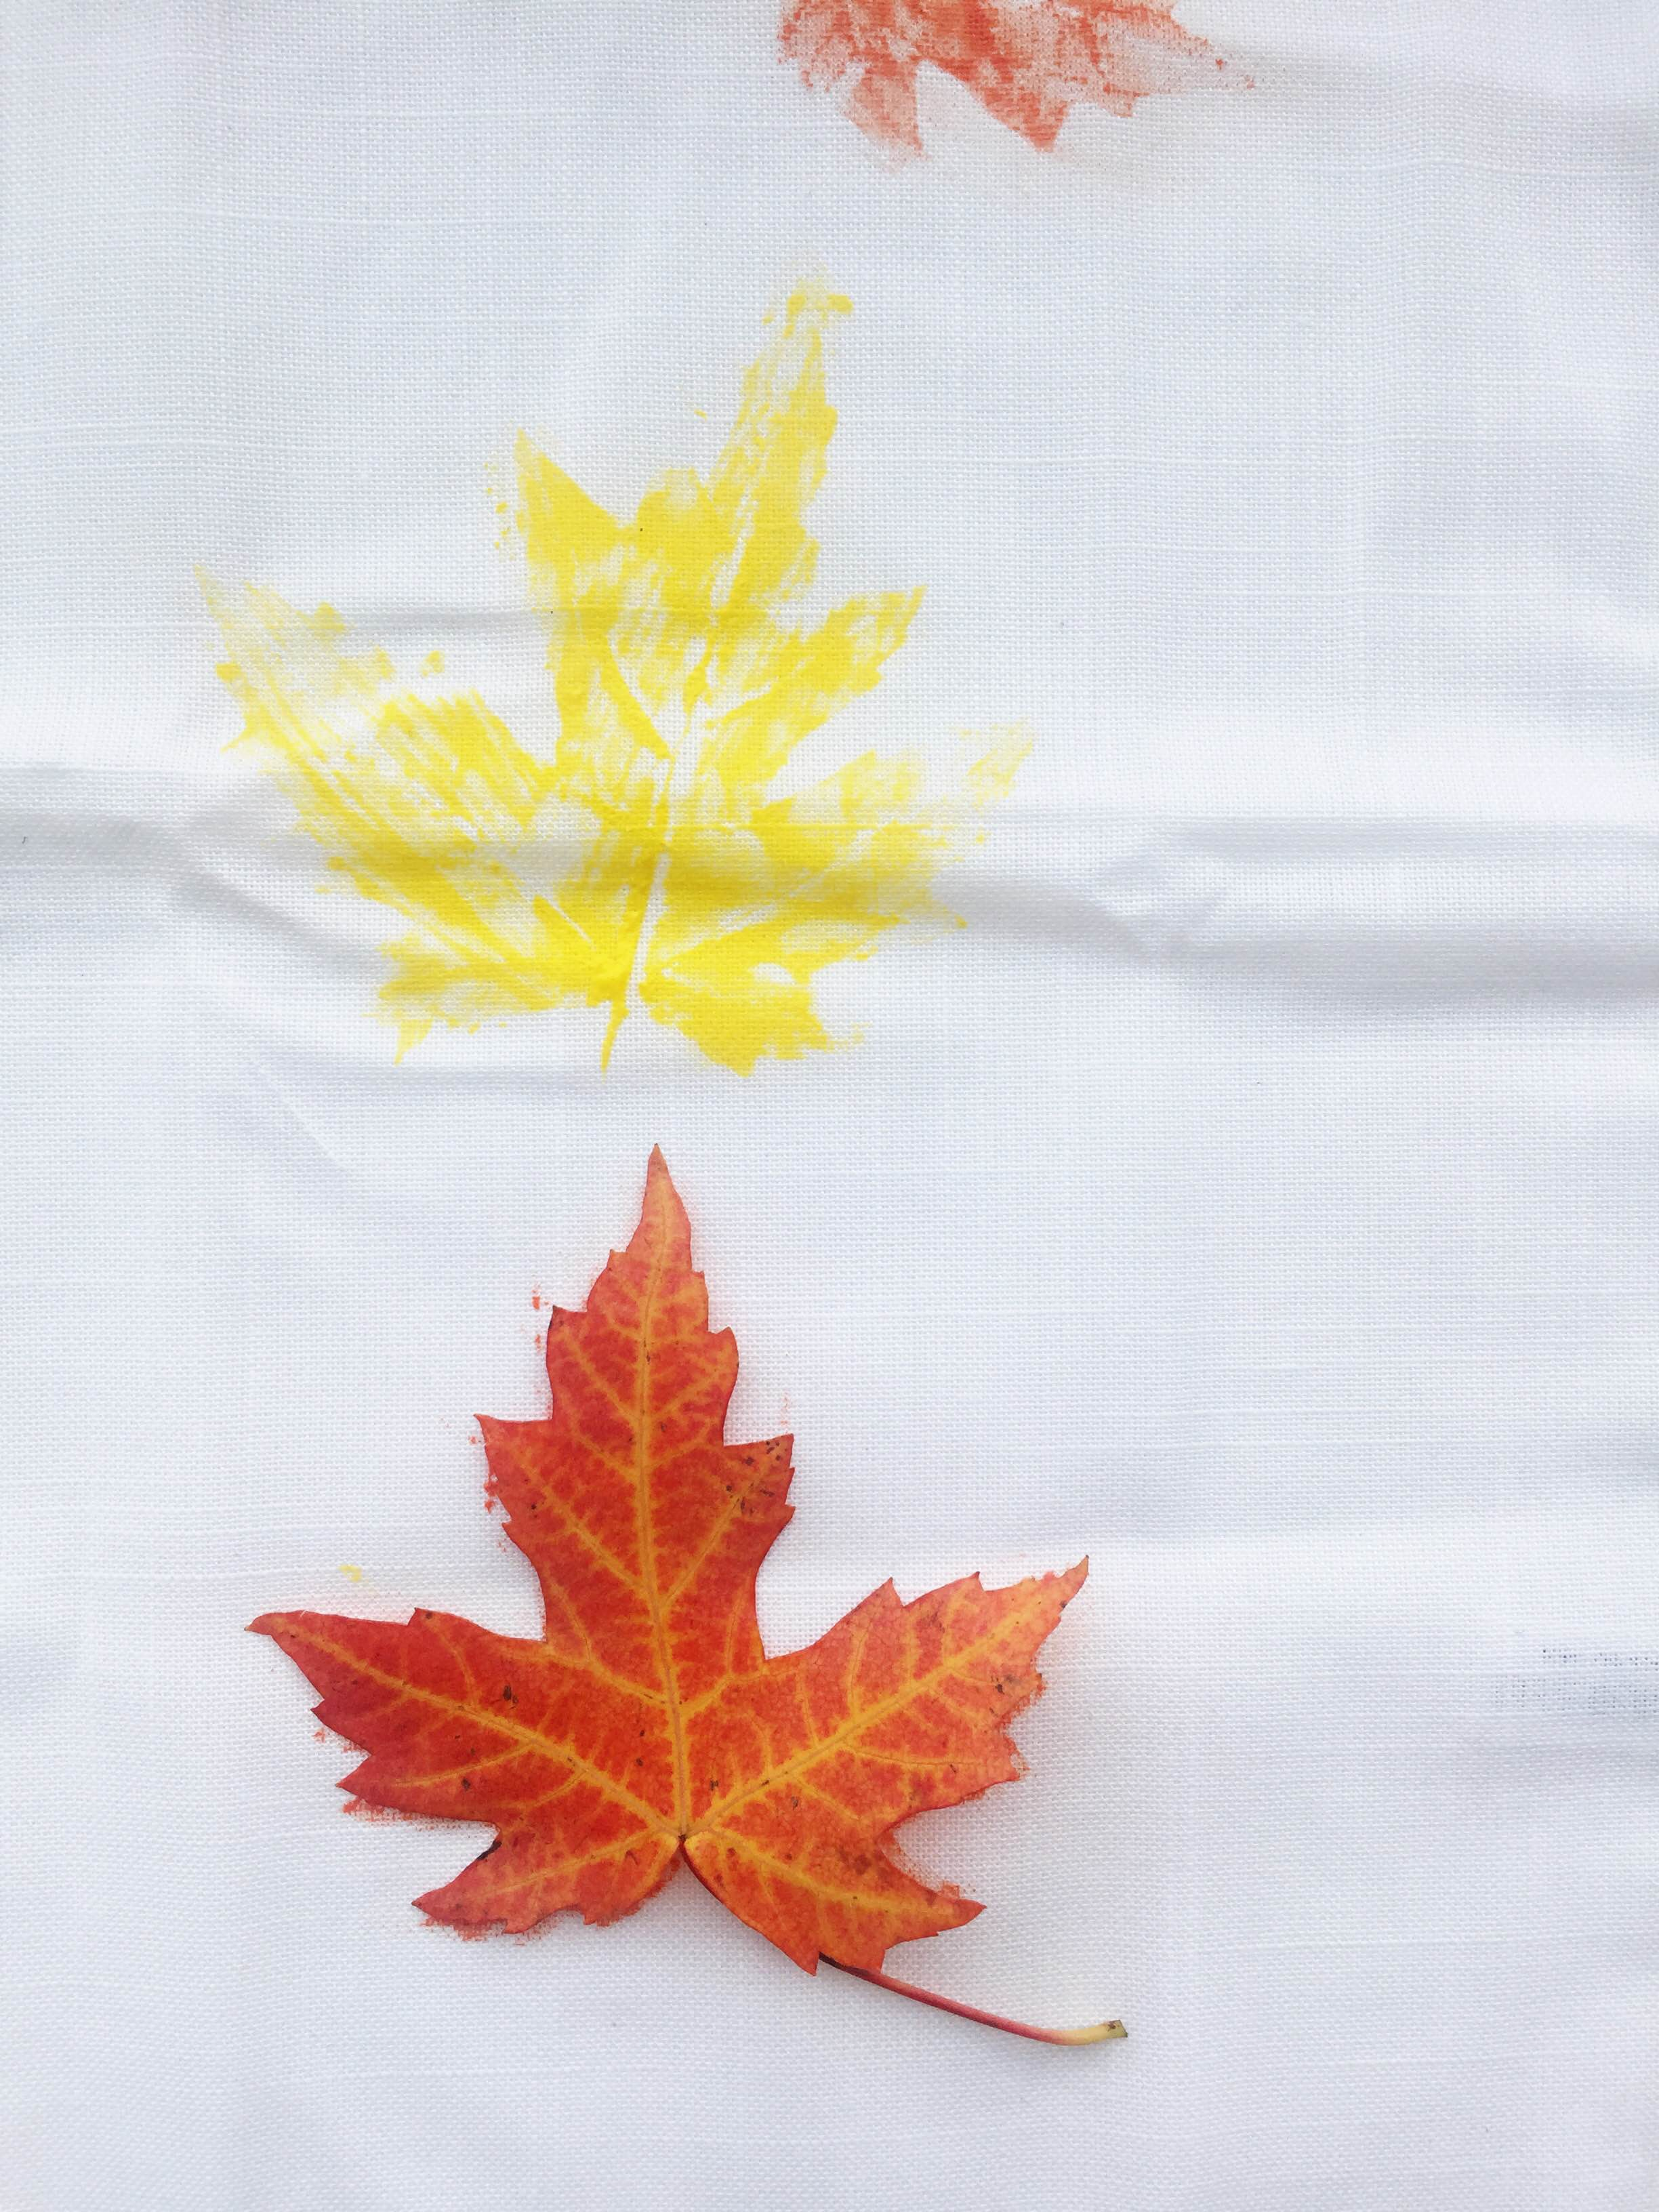 Printing with Fallen Leaves   Makelight